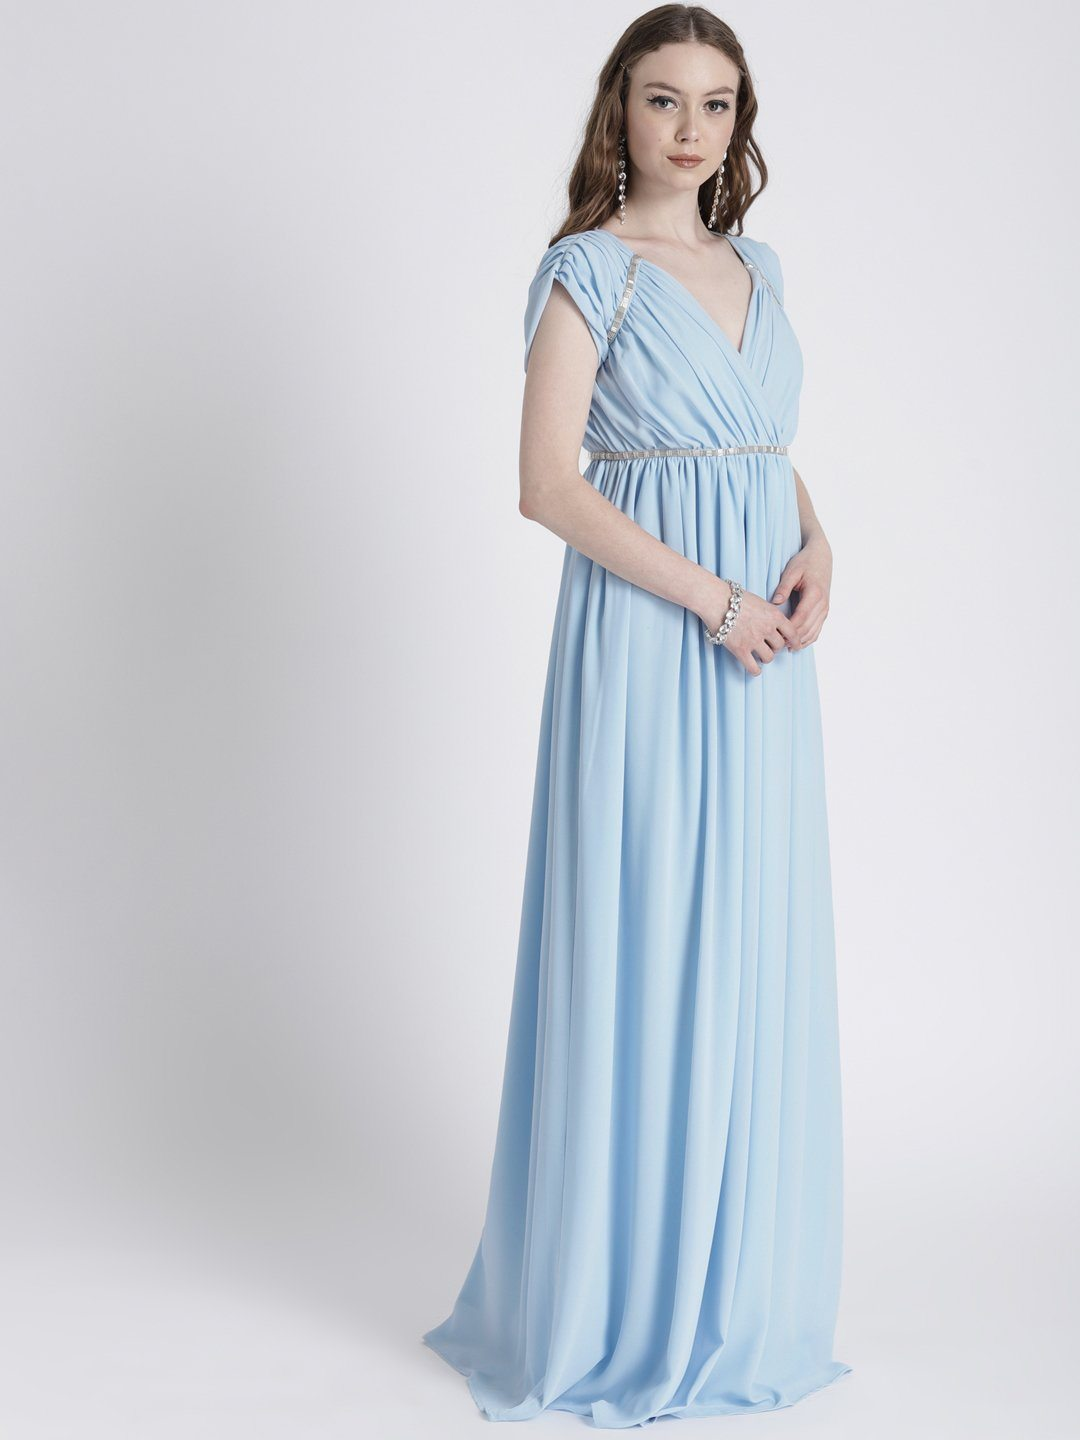 PASTEL BLUE GOWN WITH SHOULDER & WAIST EMBELLISHMENT